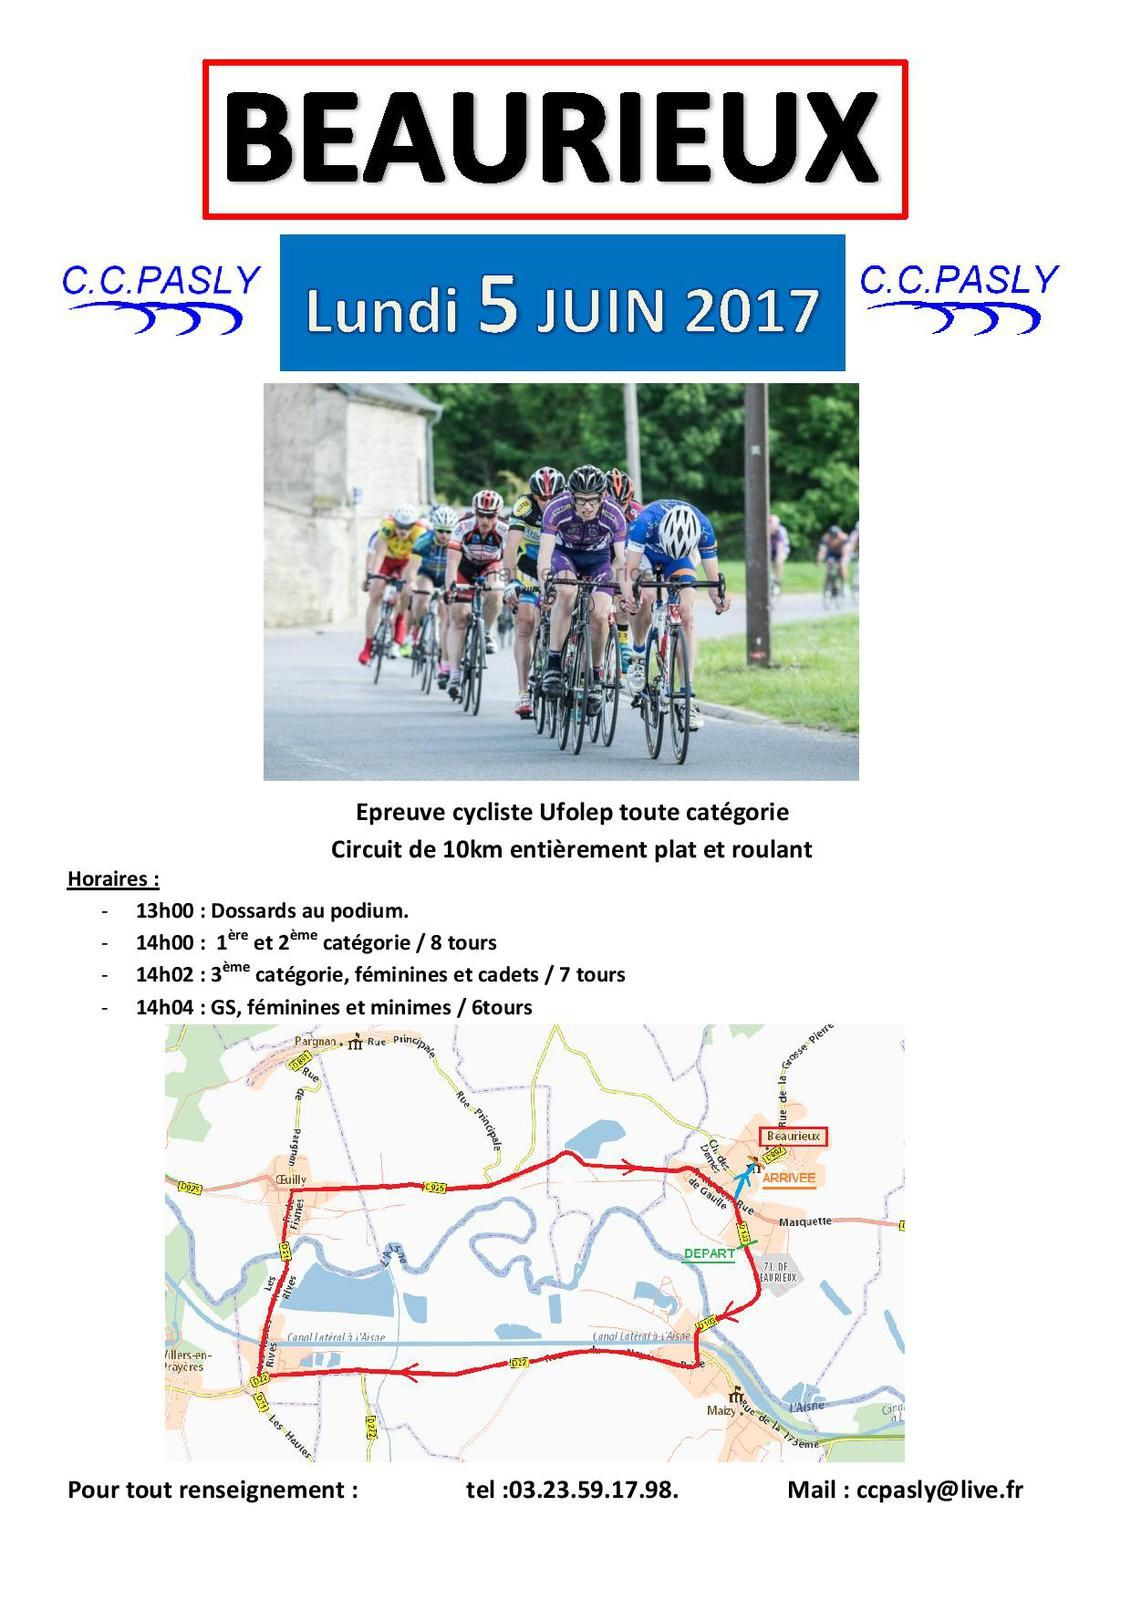 [Cyclosport] Course de BEAURIEUX du 05/06/17